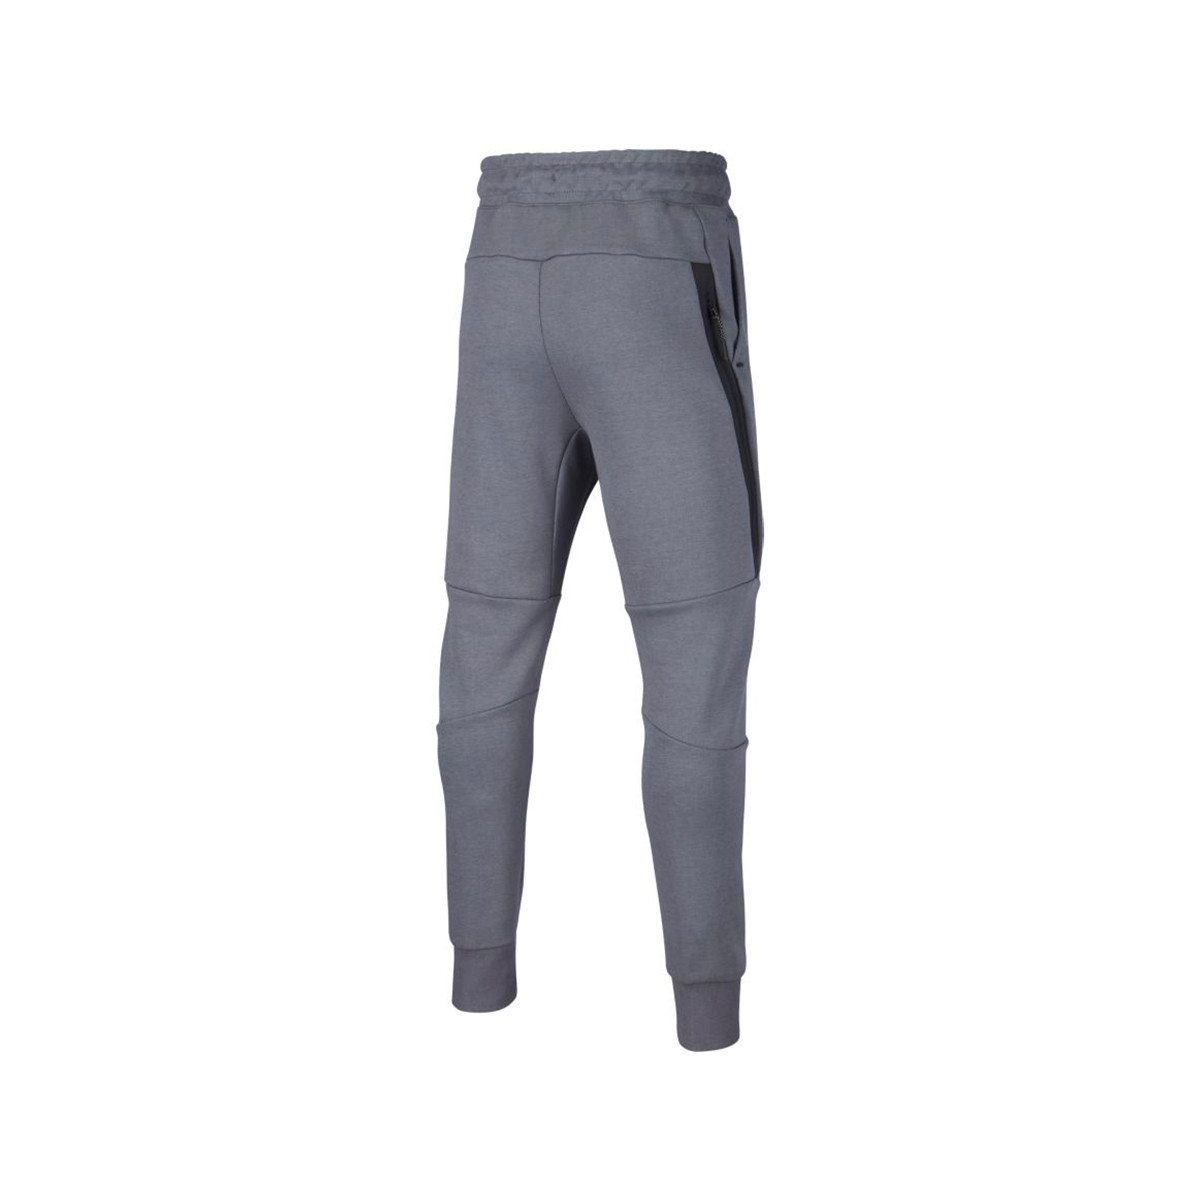 Artista dividendo Puno  Long pants Nike Tottenham Hotspurt NSW Tech Fleece CL 2019-2020 Niño Flint  grey-Blue fury - Football store Fútbol Emotion